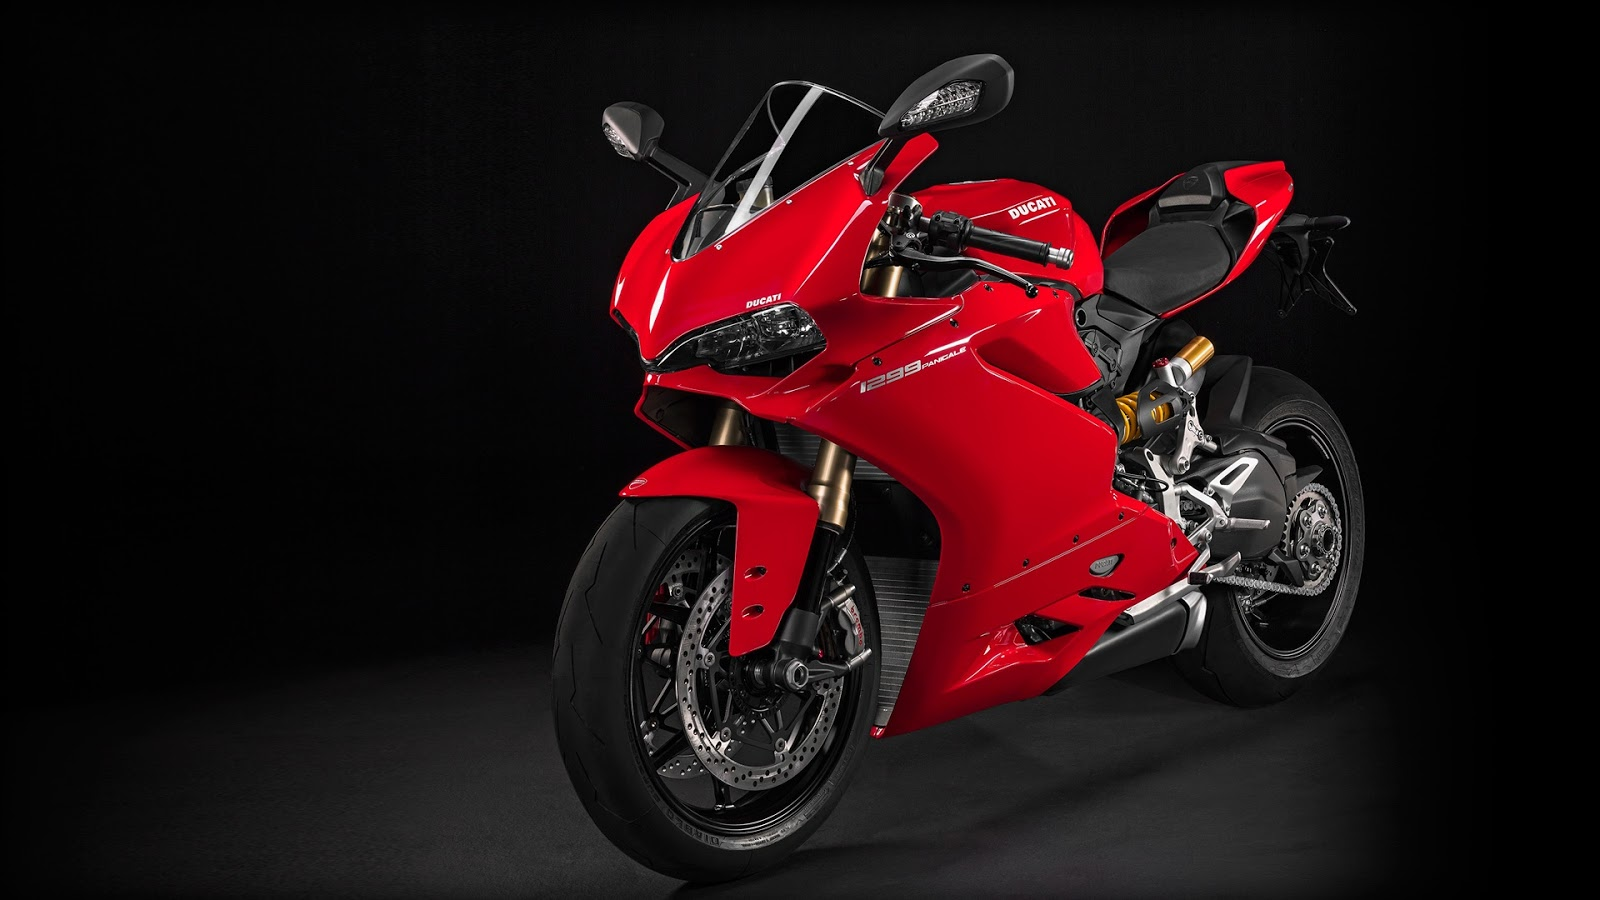 See Here Ducati 959 Panigale Bike Images Photos Pics Pictures And Wallpaper Free Download For All Your Devices Laptop Mobile PC IPhone Tablets